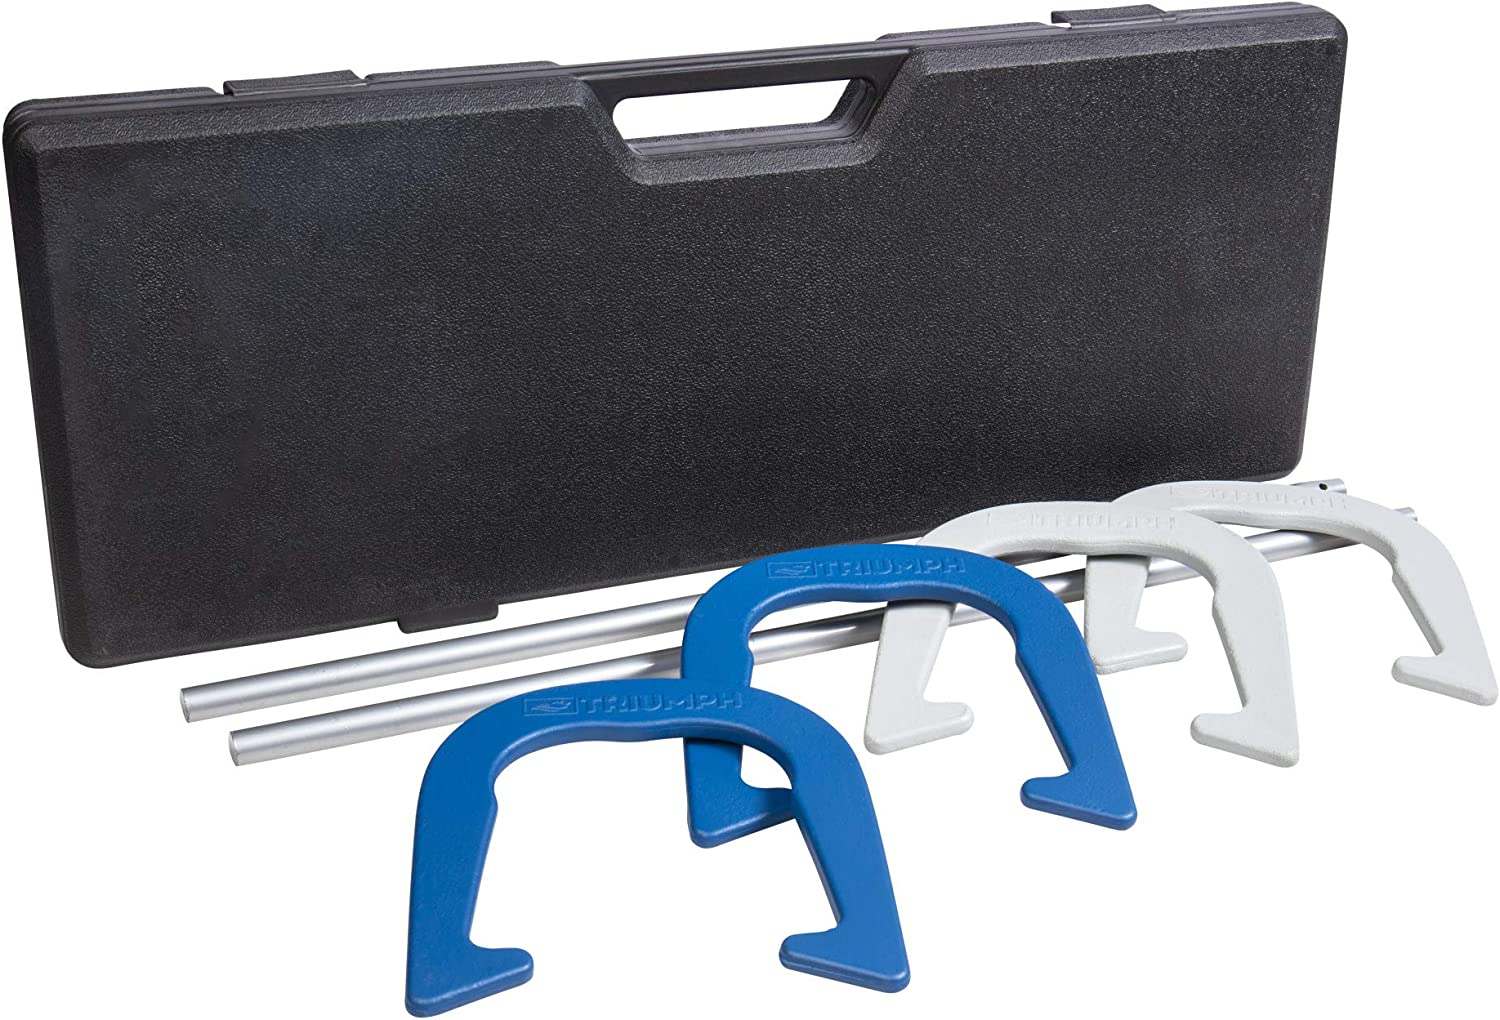 Triumph Premium Forged Horseshoe Set Complete with 4 Horseshoes, 2 Stakes and Hard Plastic Case with Locking Tabs for Transportation and Storage : Sports & Outdoors